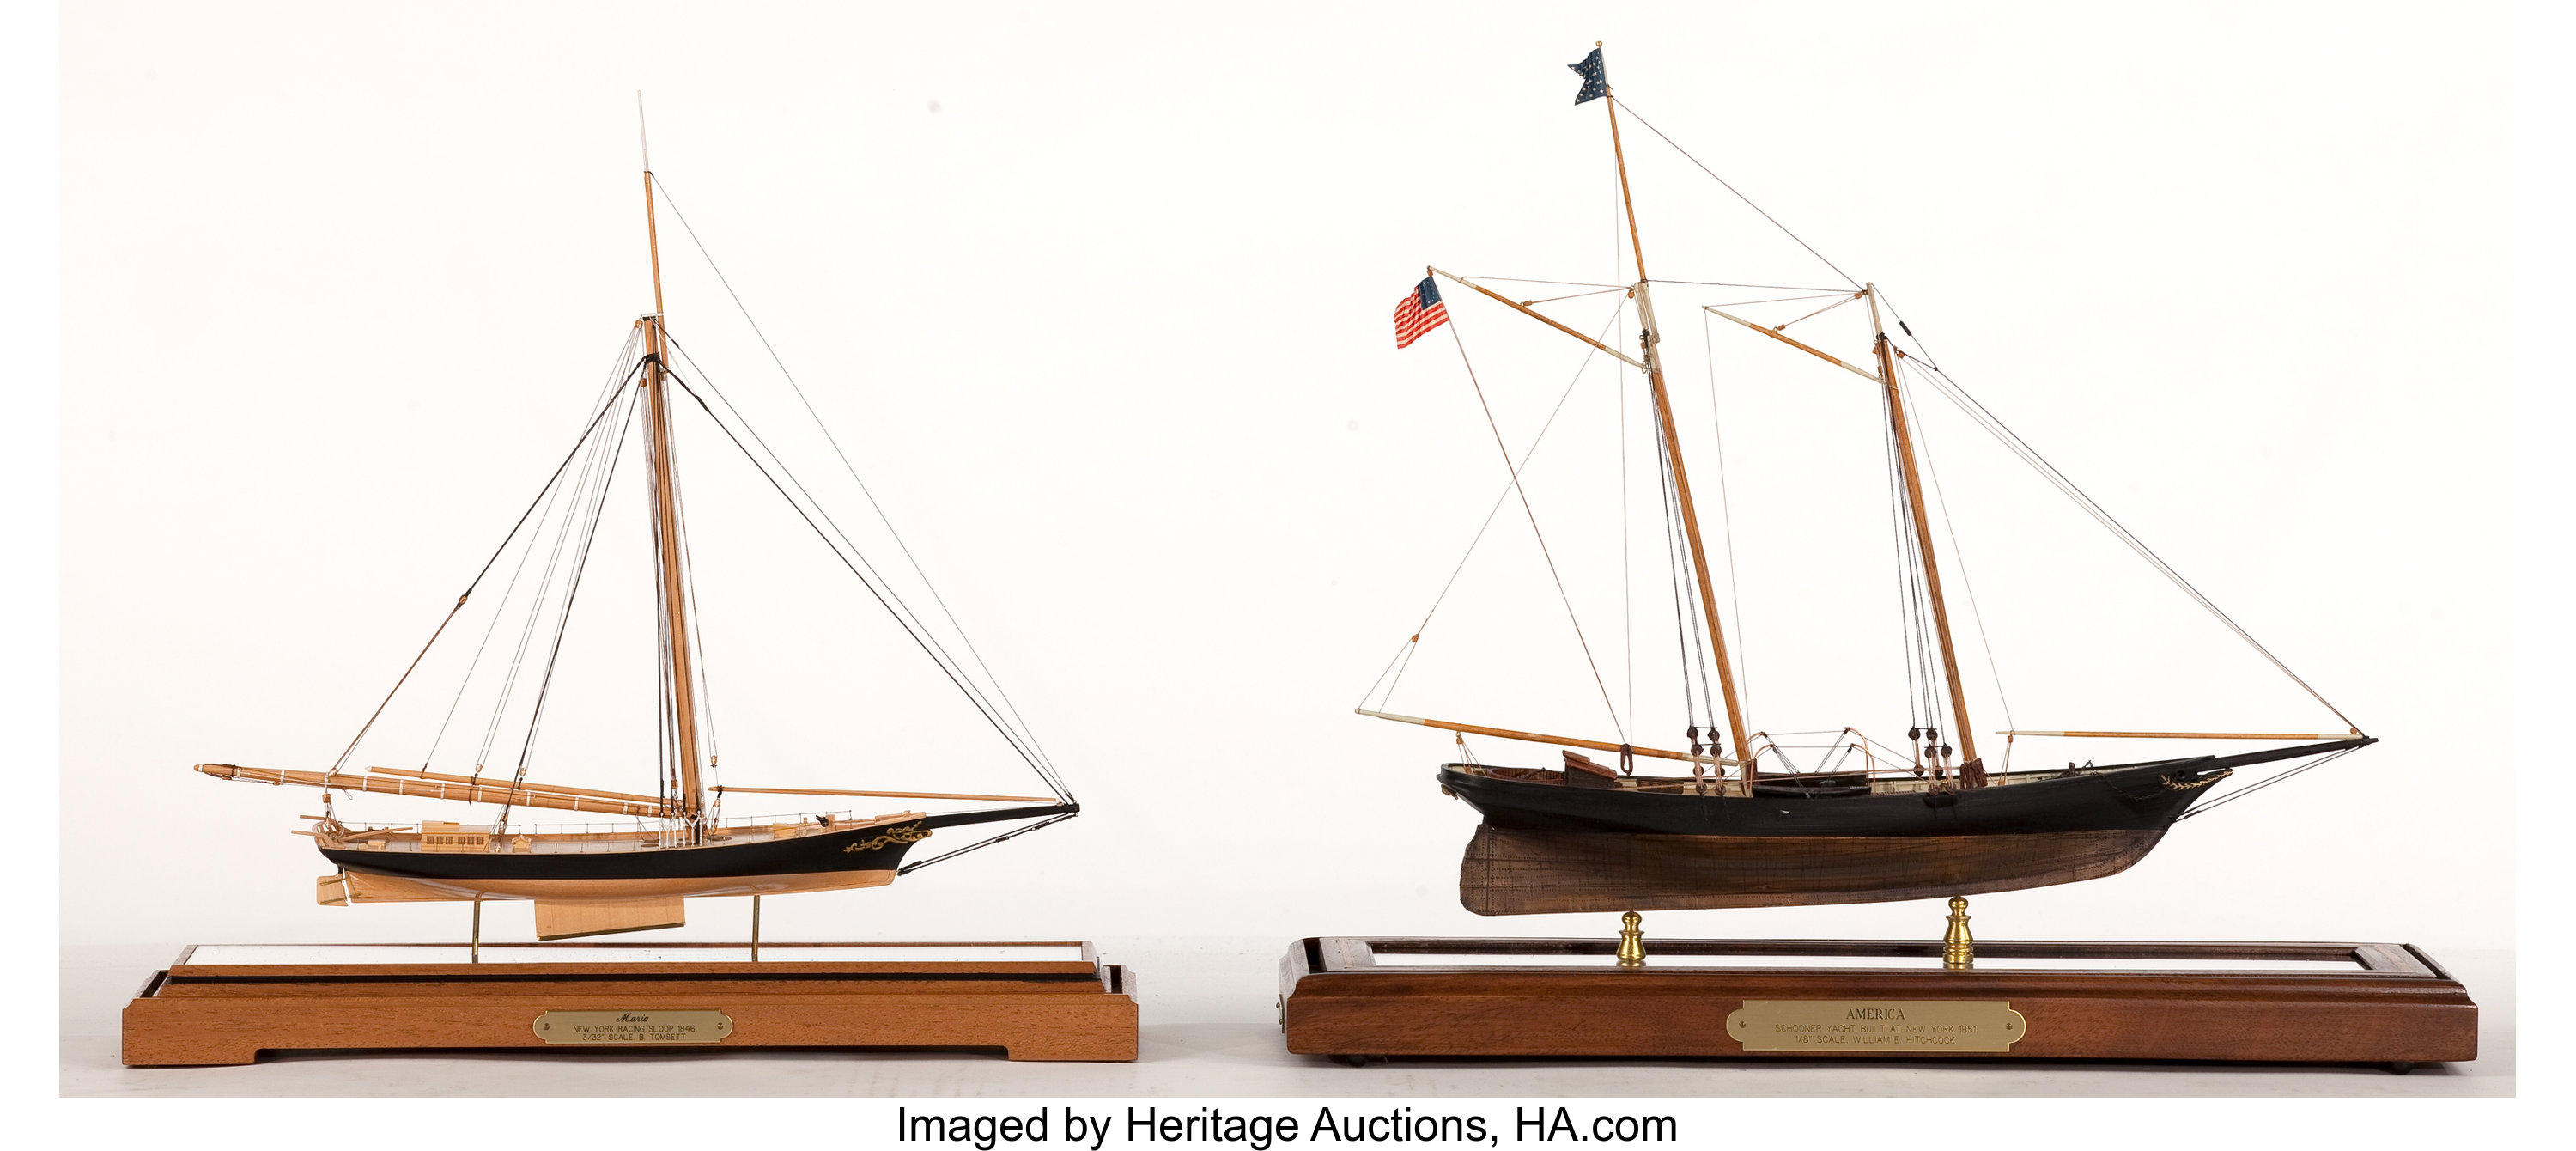 TWO SCALE MODELS OF THE RACING YACHTS 'MARIA' AND 'AMERICA'  The